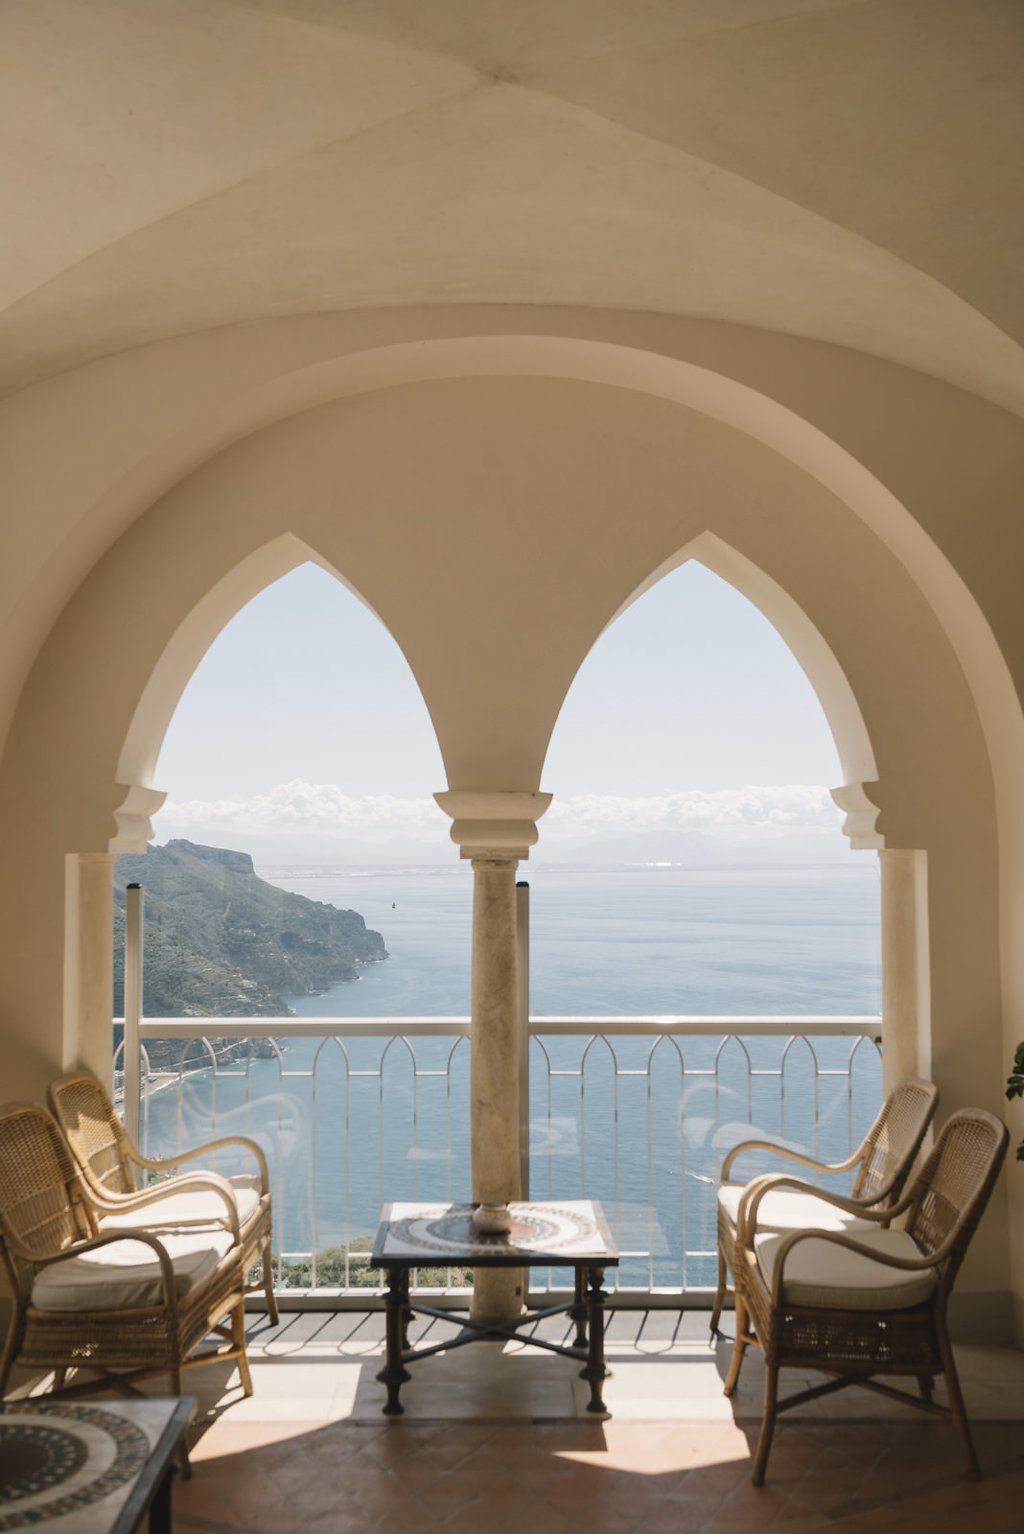 The Hotel Belmond Hotel Caruso Is Every Bit As Magical As Ravello Itself